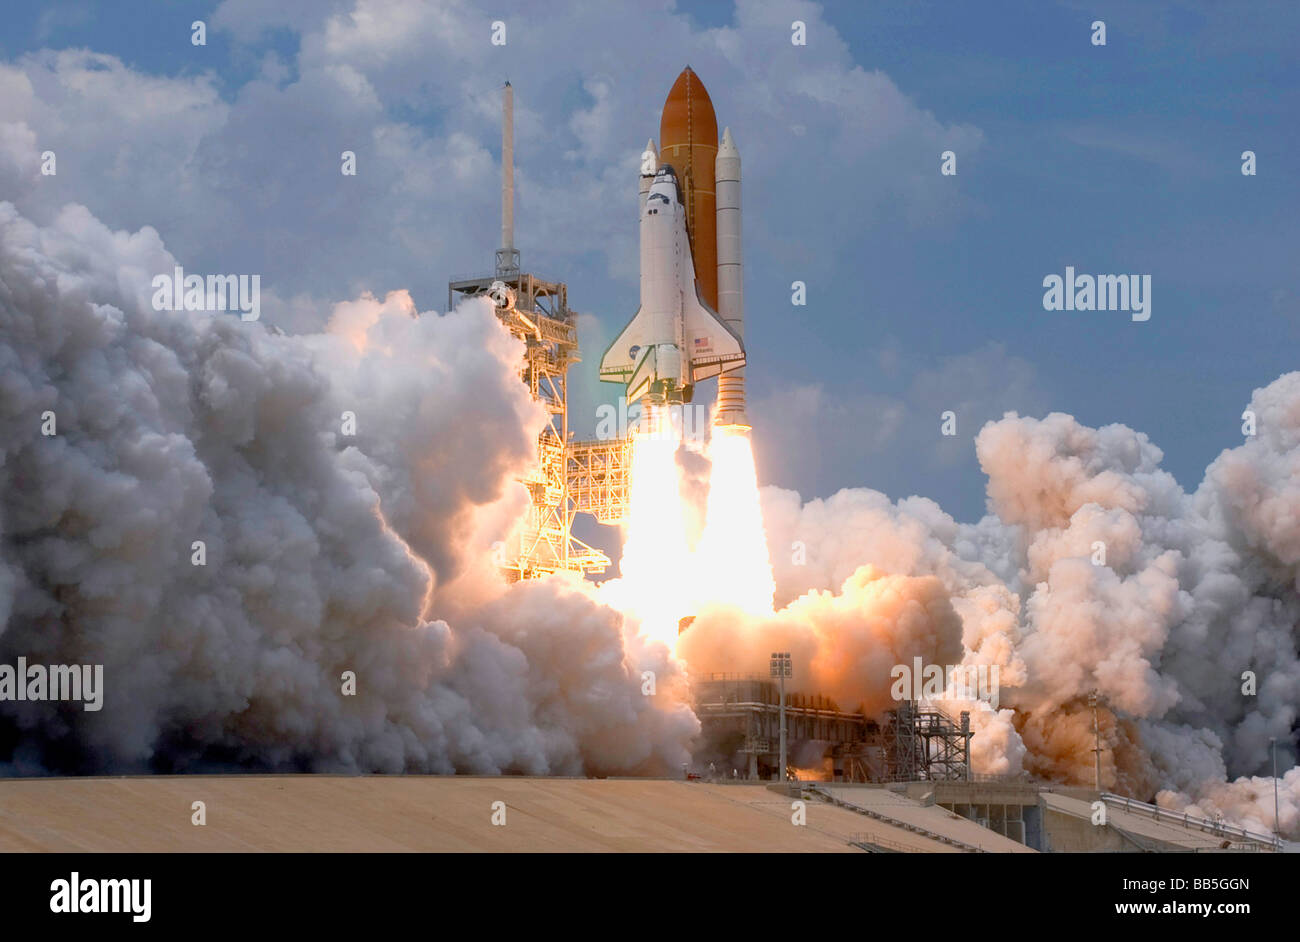 NASA launching space shuttle Atlantis on mission to service Hubble Telescope Stock Photo